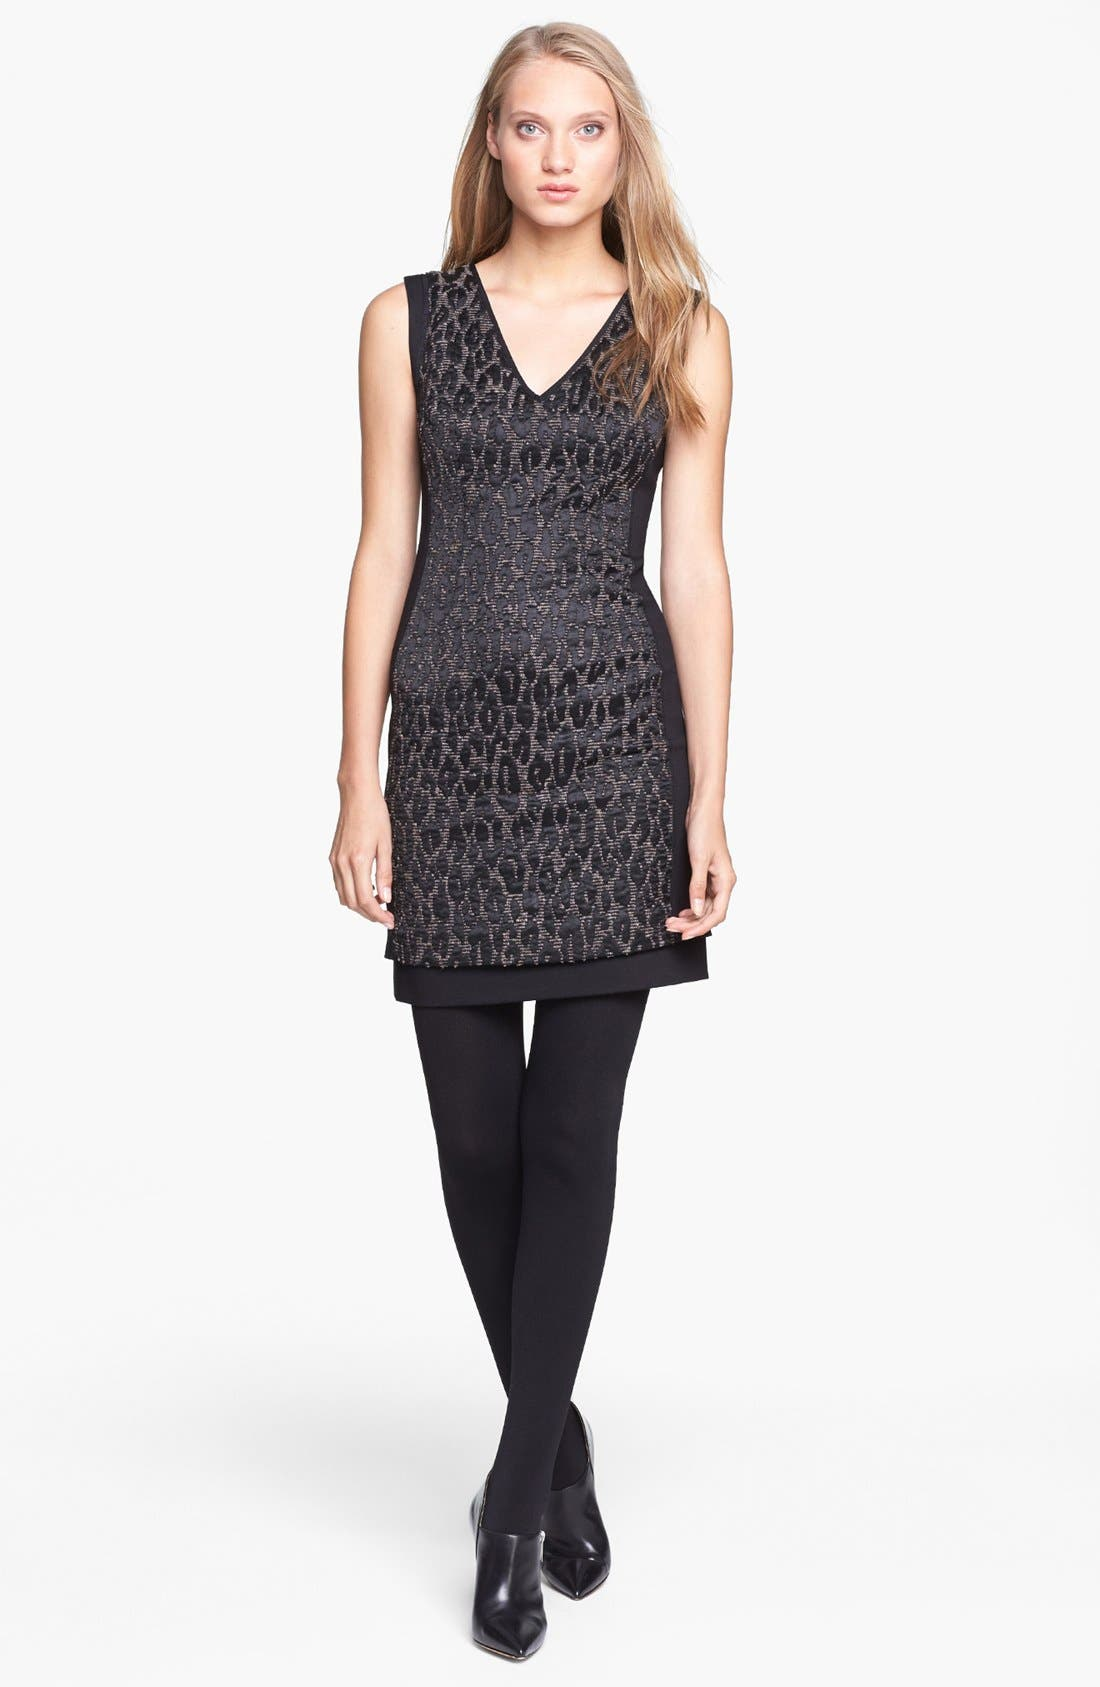 Main Image - Trina Turk 'Sharise' Jacquard Sheath Dress